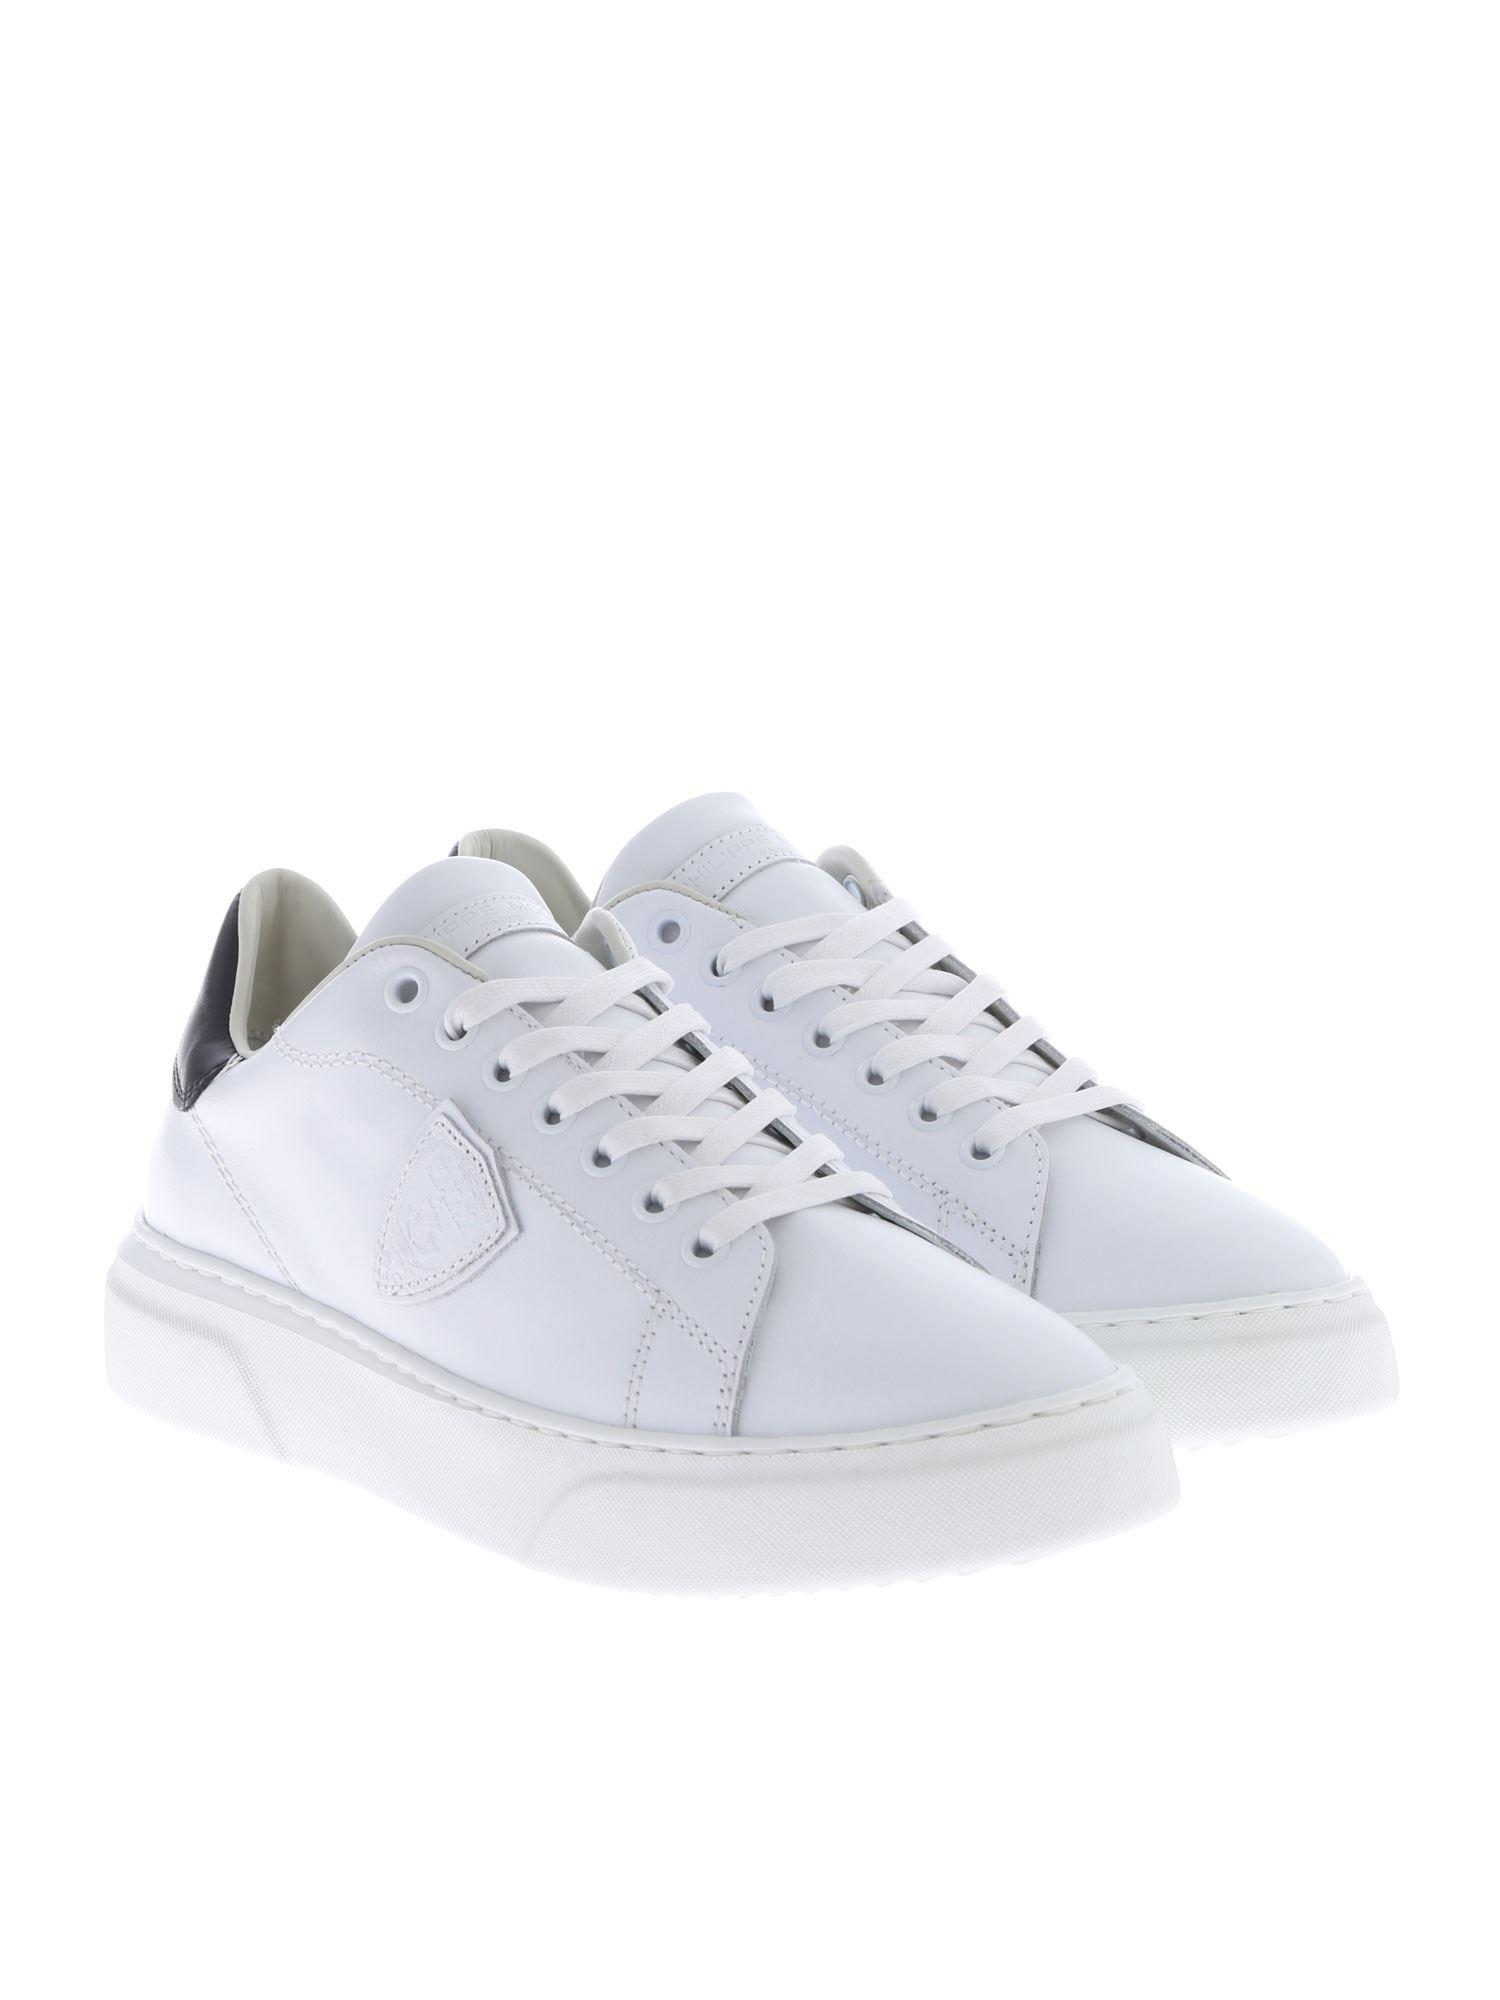 7c4ee2e42d22 Philippe Model - Temple Femme L Sneakers In White - Lyst. View fullscreen